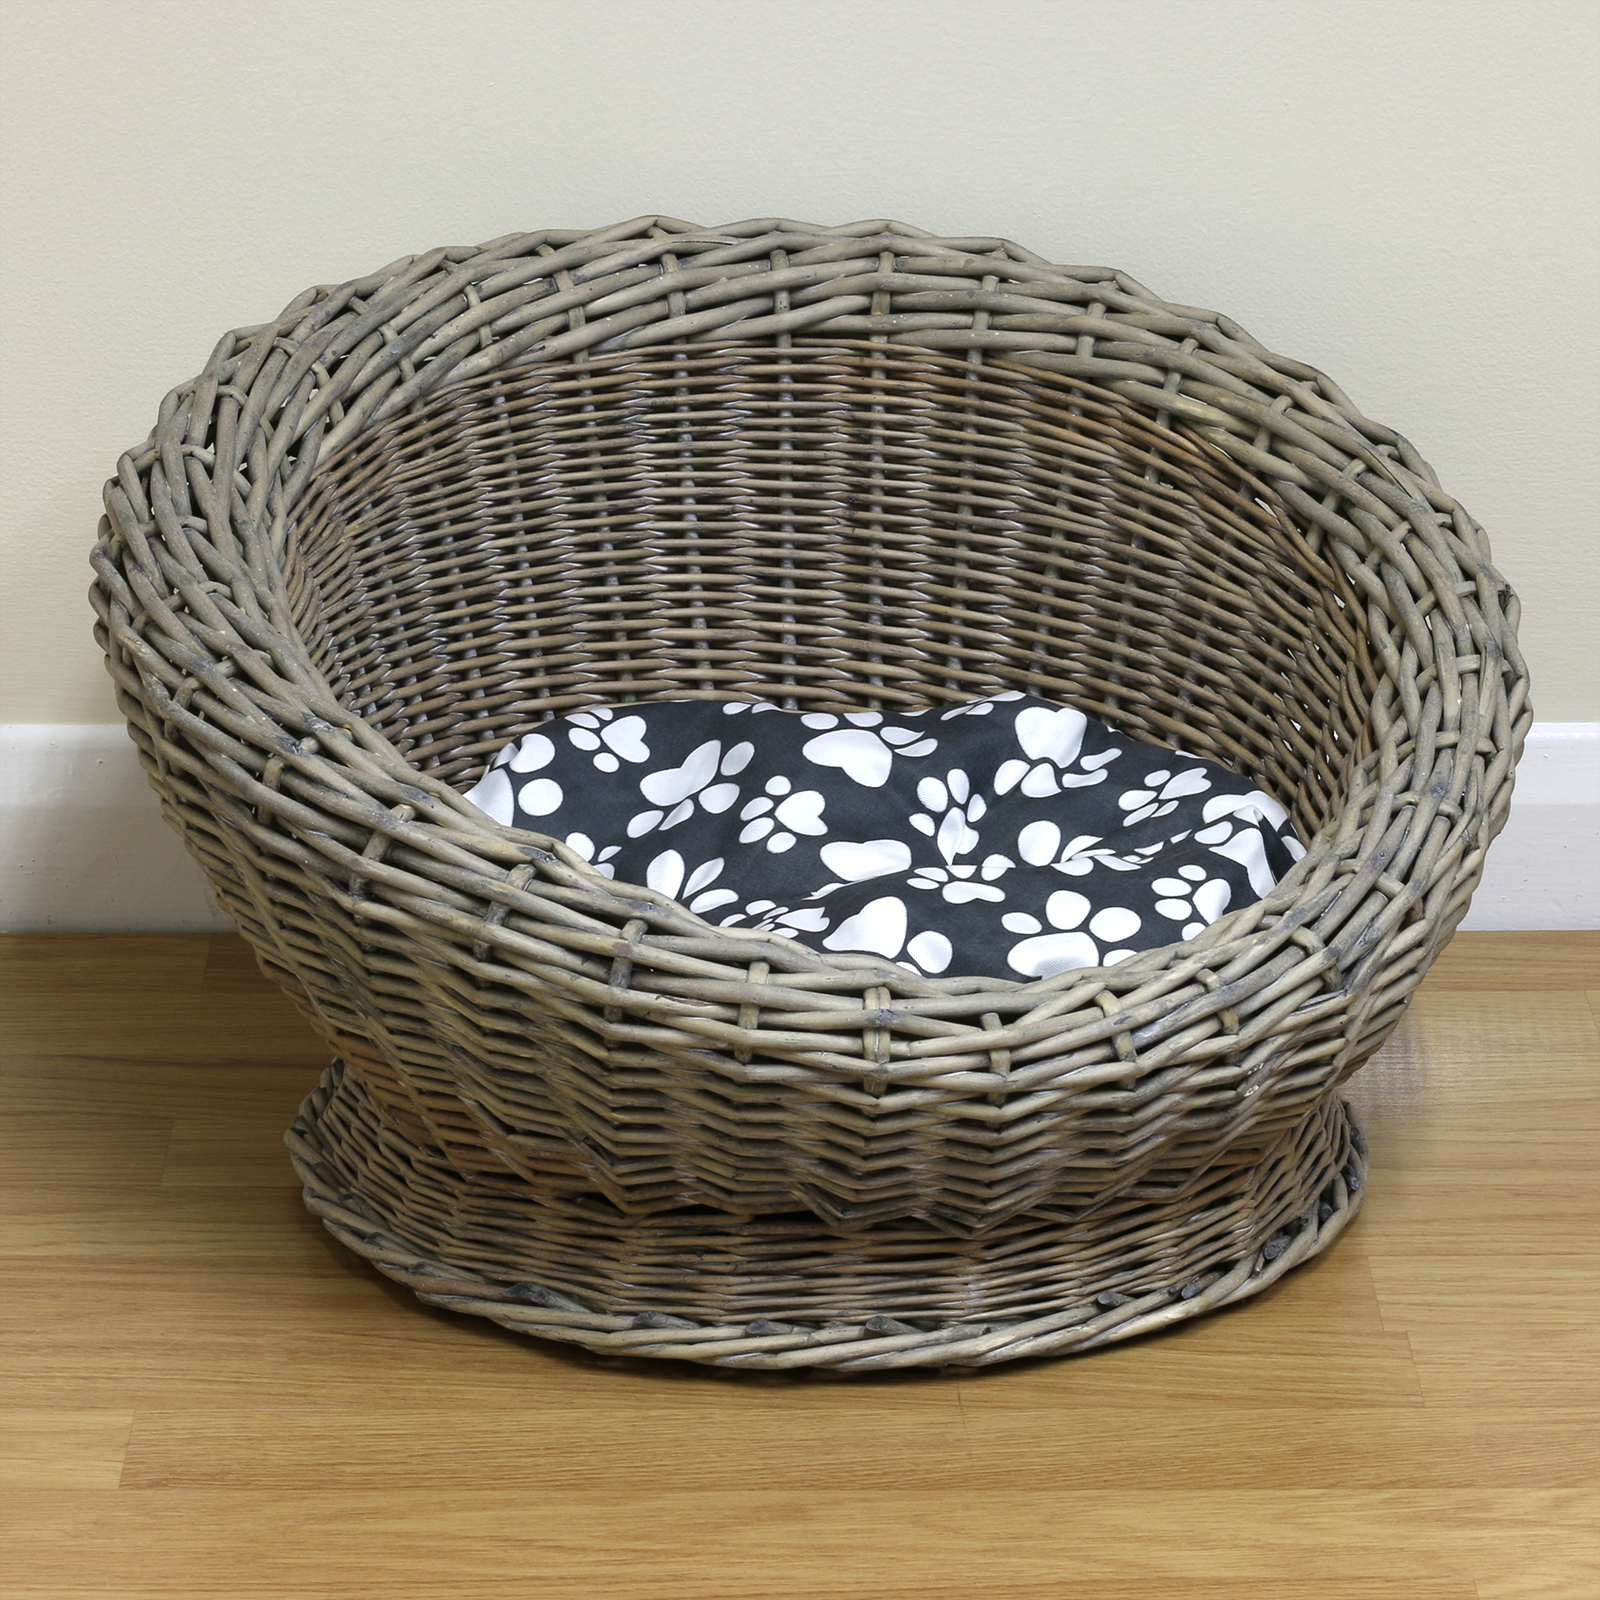 How To Weave A Cat Basket : Small round woven natural wicker shabby chic pet bed